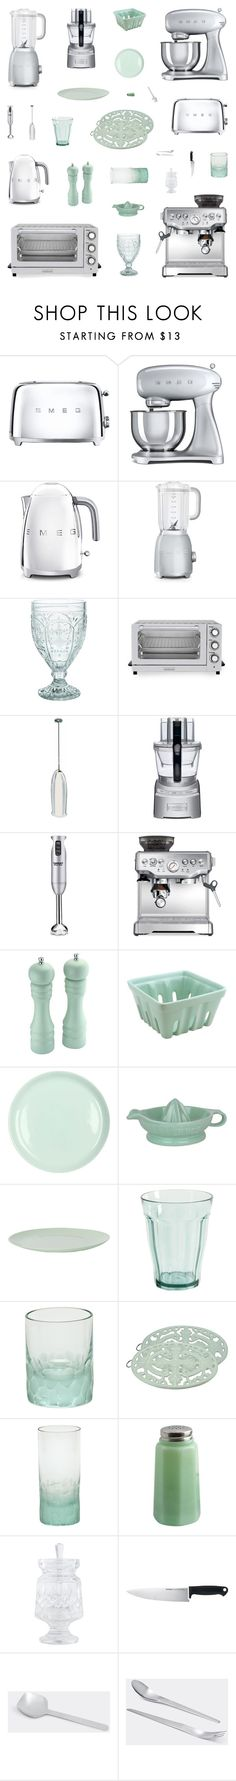 """Mint & Silver Retro Kitchen Decor"" by belenloperfido ❤ liked on Polyvore featuring interior, interiors, interior design, home, home decor, interior decorating, Smeg, Frontgate, Fitz and Floyd and Cuisinart"